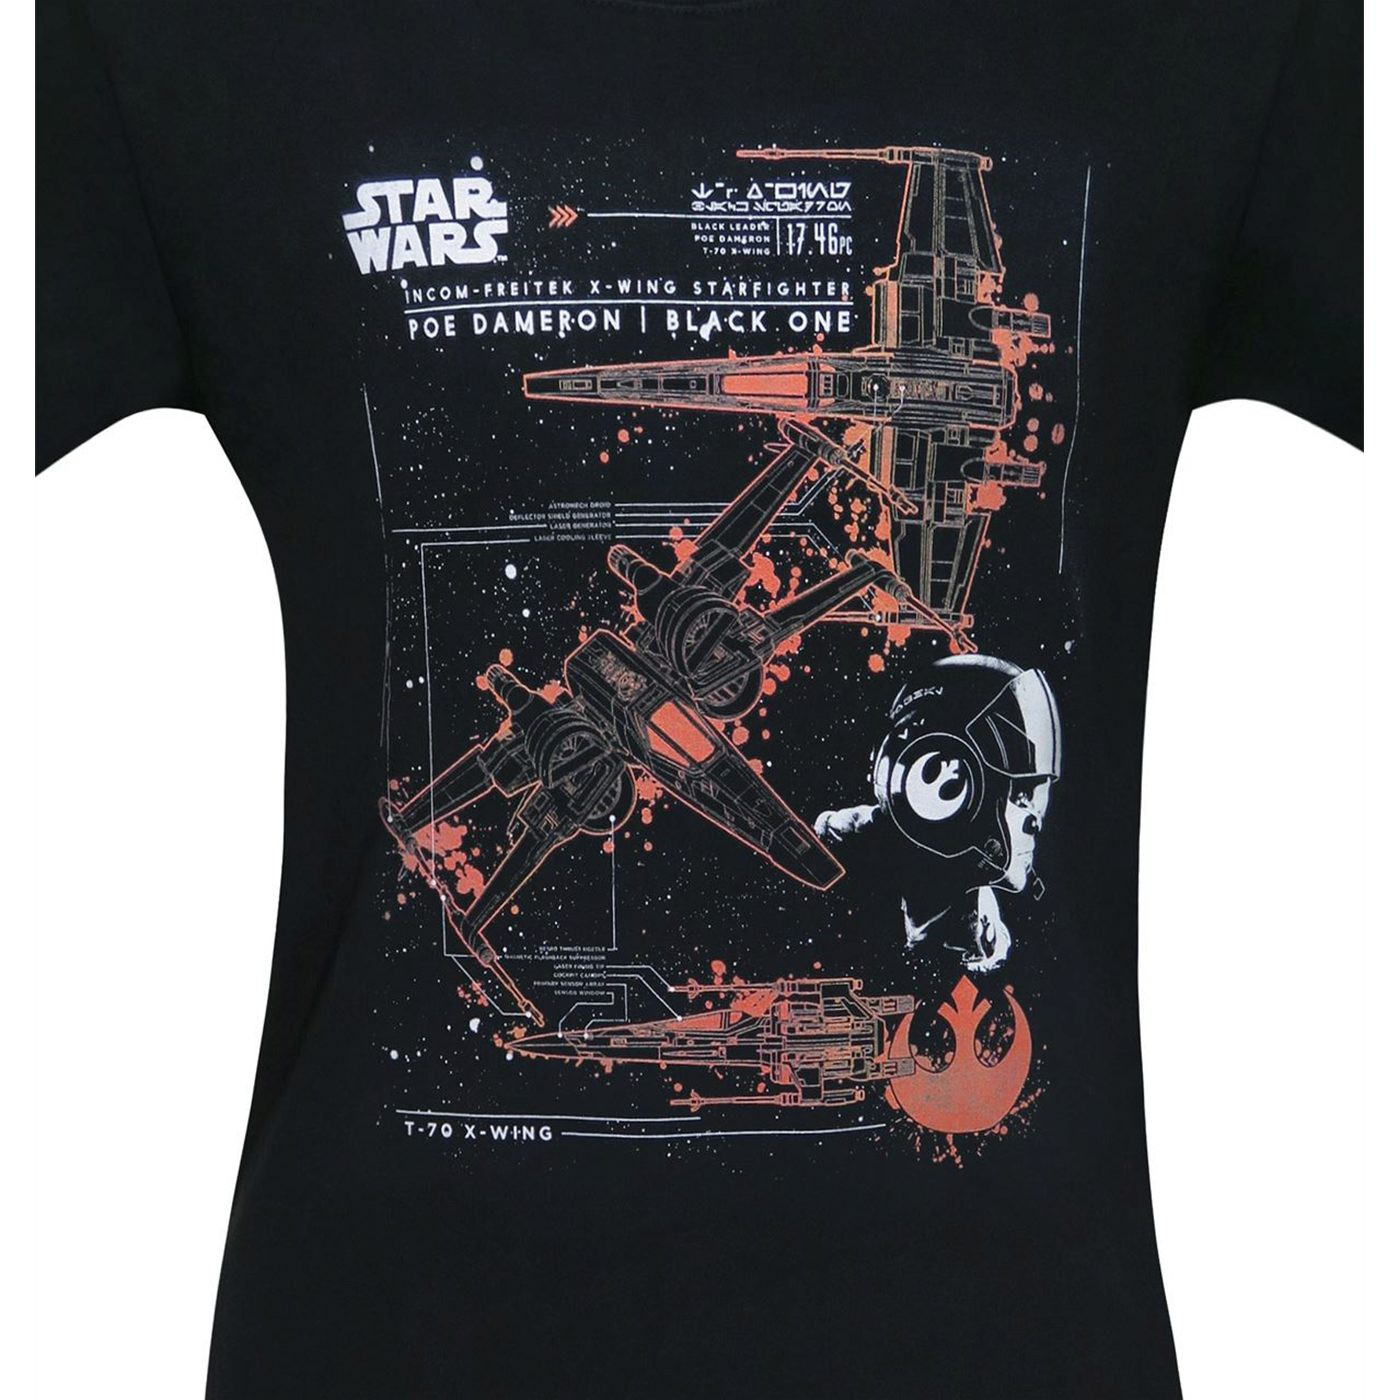 Star Wars Black One T-70 X-Wing Men's T-Shirt